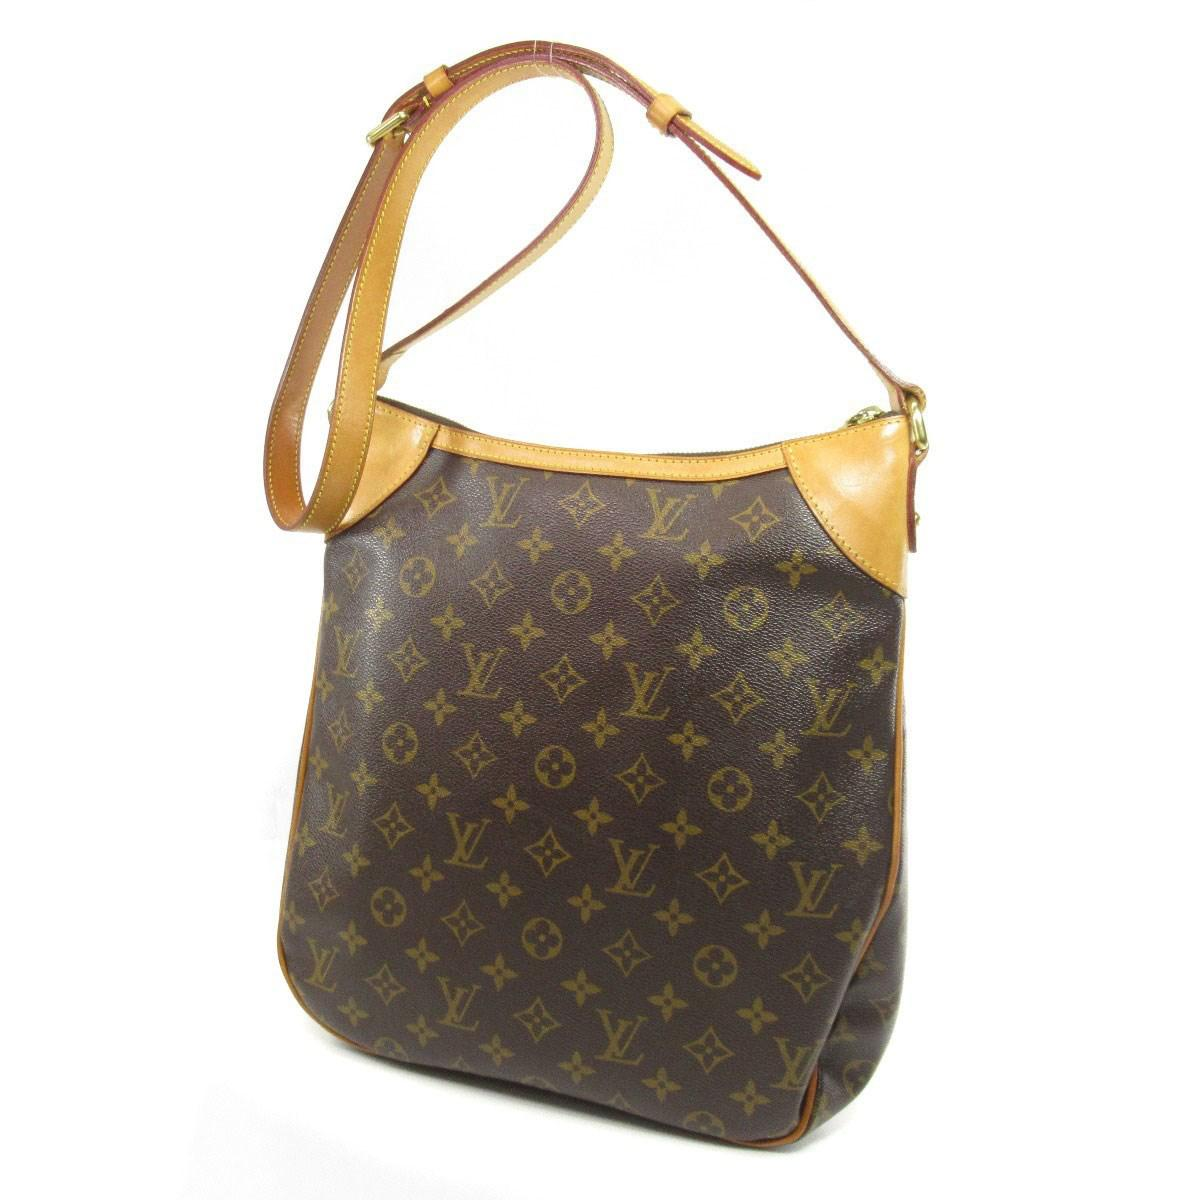 a368d436dbe1 Lyst - Louis Vuitton Monogram Canvas Shoulder Bag M56389 Odeon Mm in ...